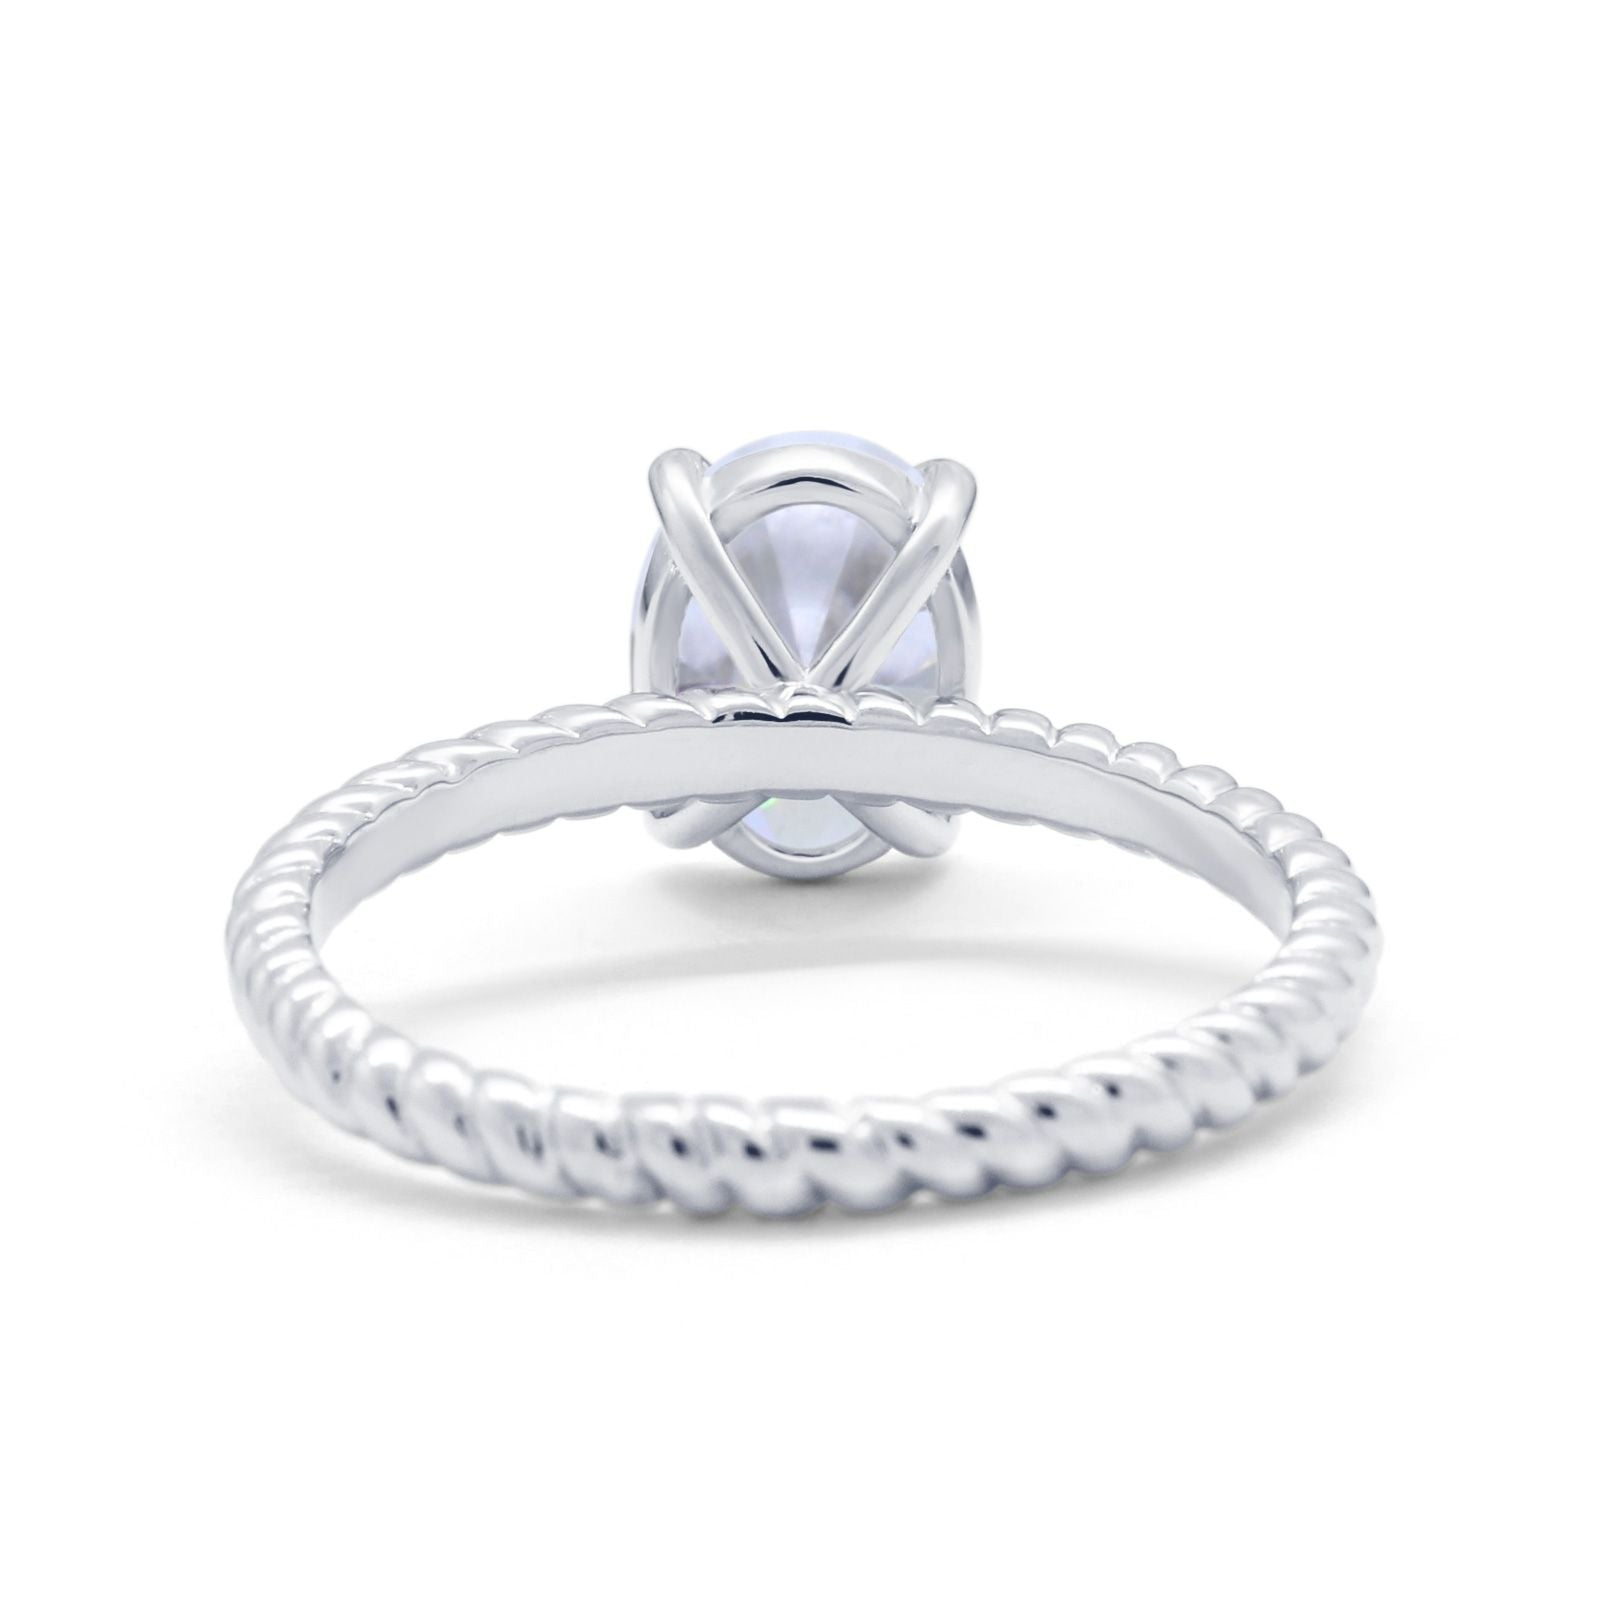 Solitaire Braided Engagement Ring Simulated Cubic Zirconia 925 Sterling Silver